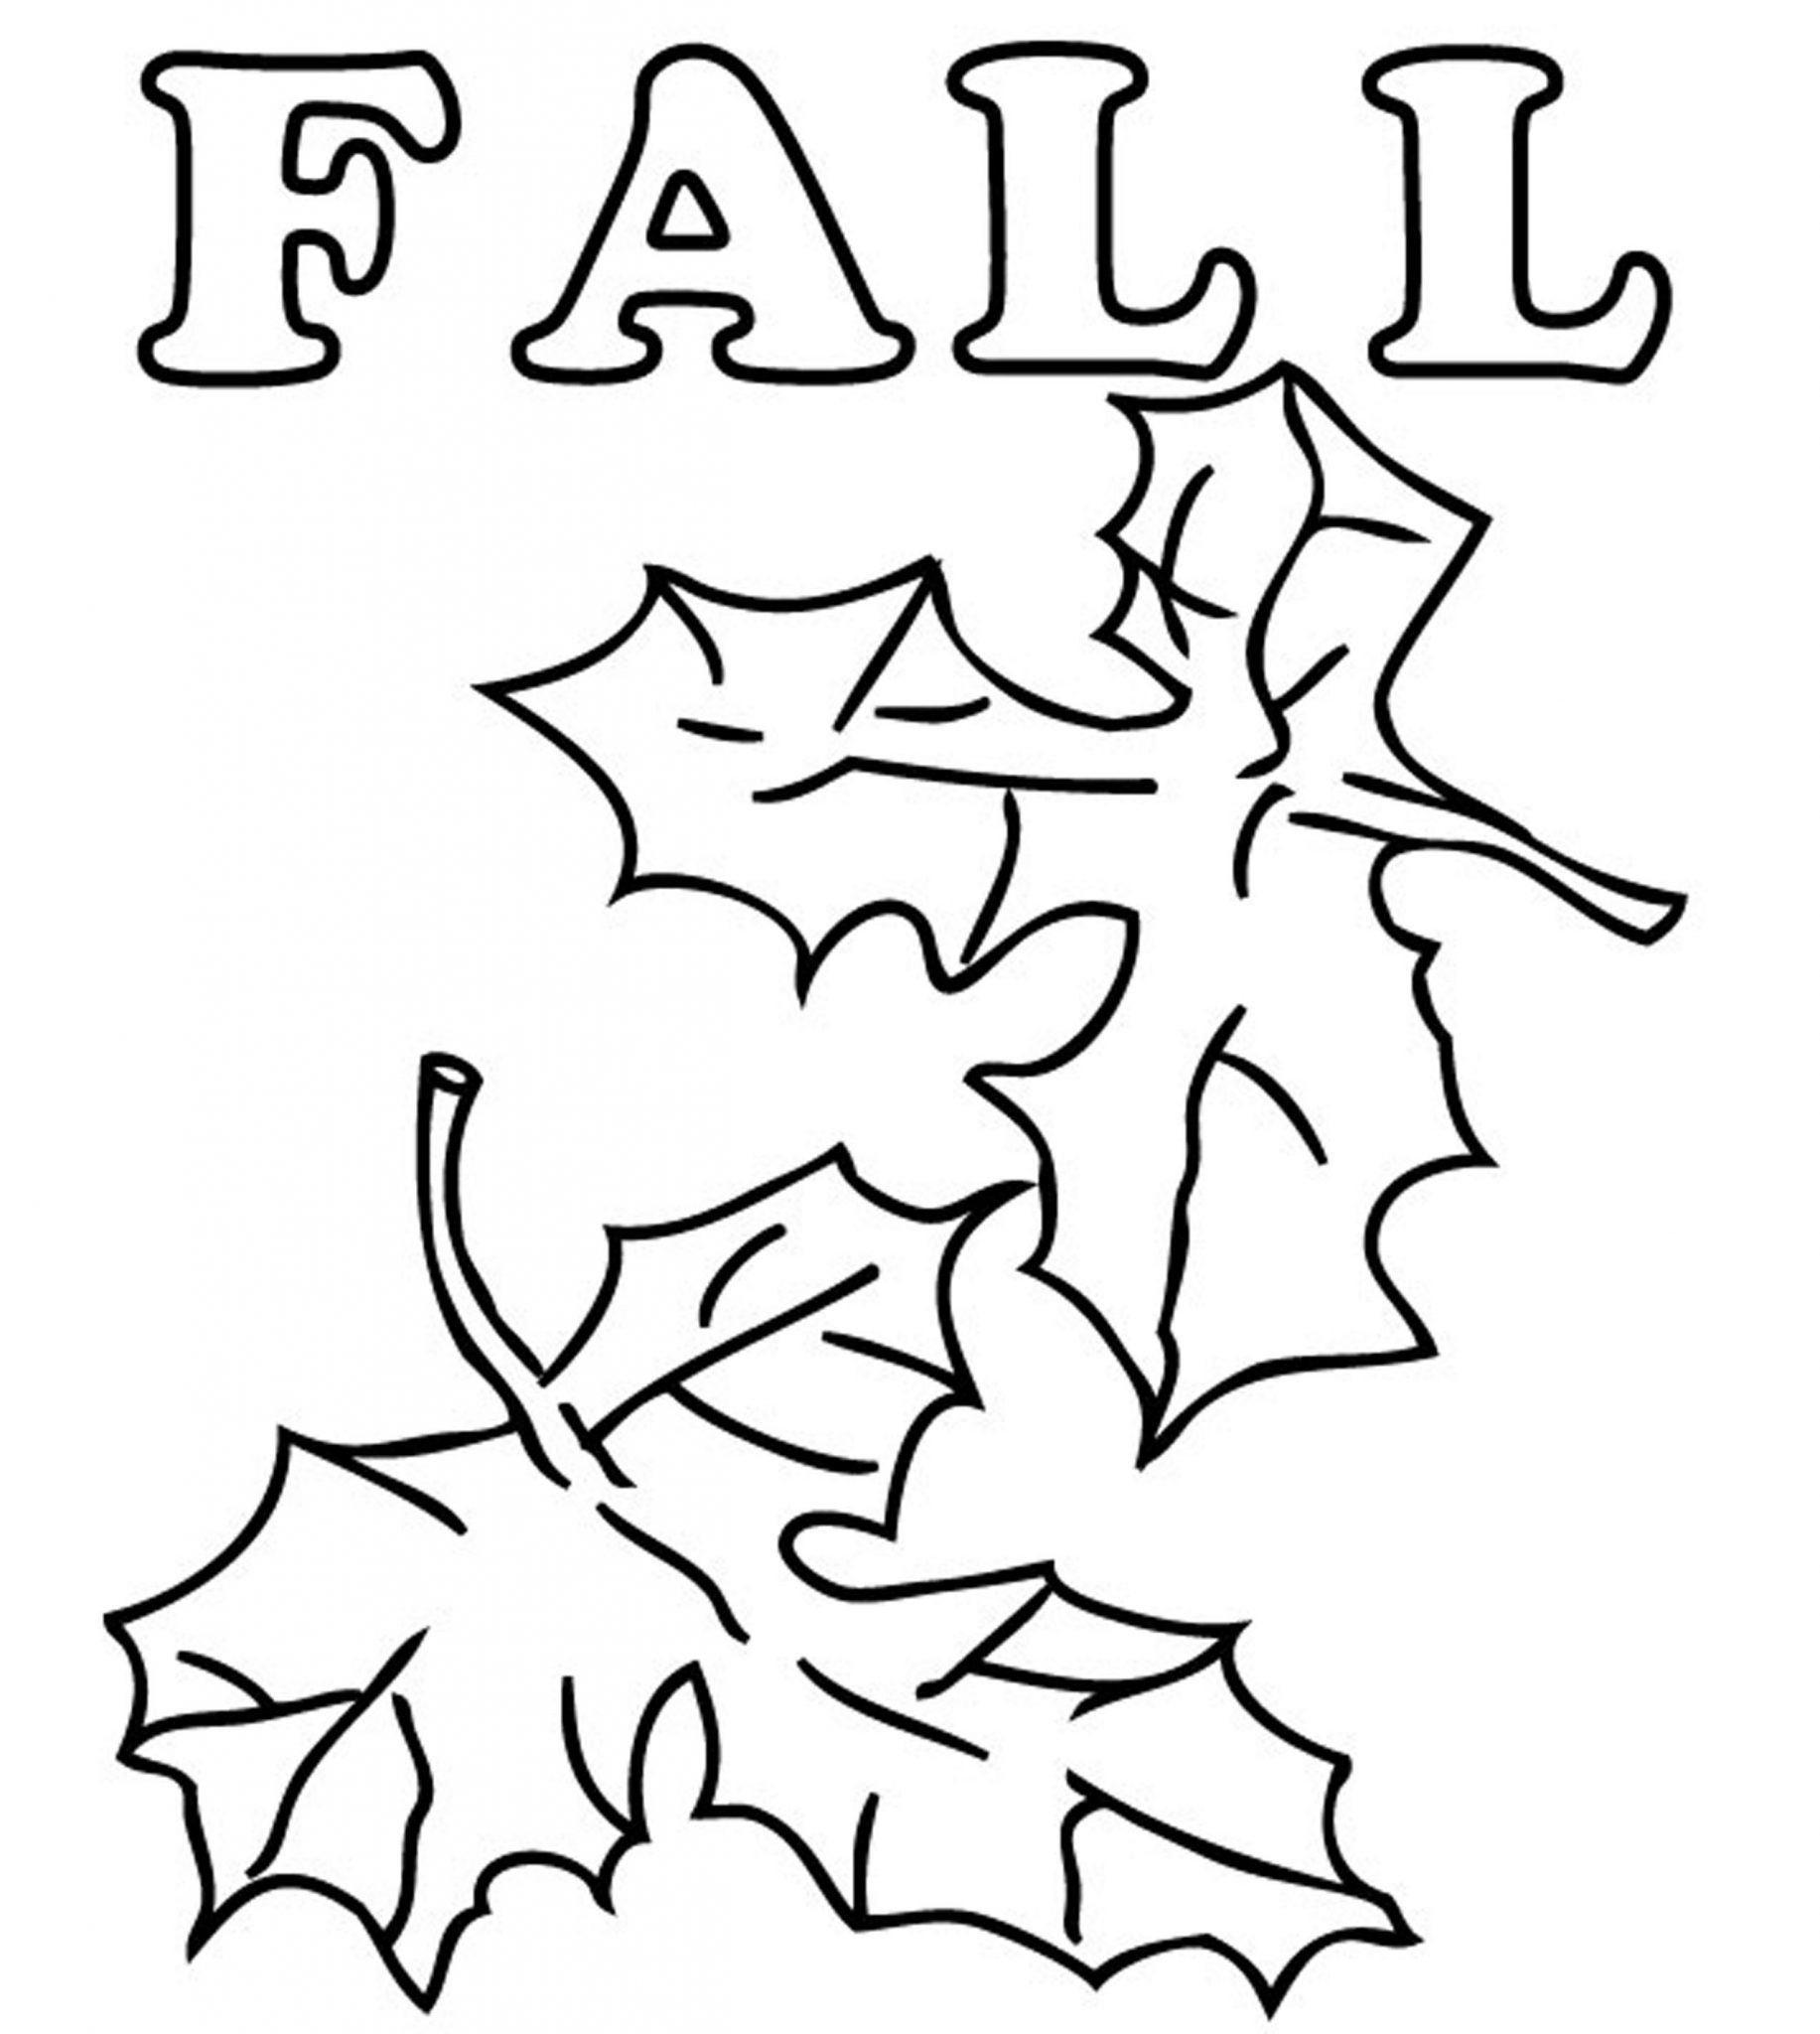 Fall Leaves and Acorn coloring page | Free Printable Coloring Pages | 2048x1833